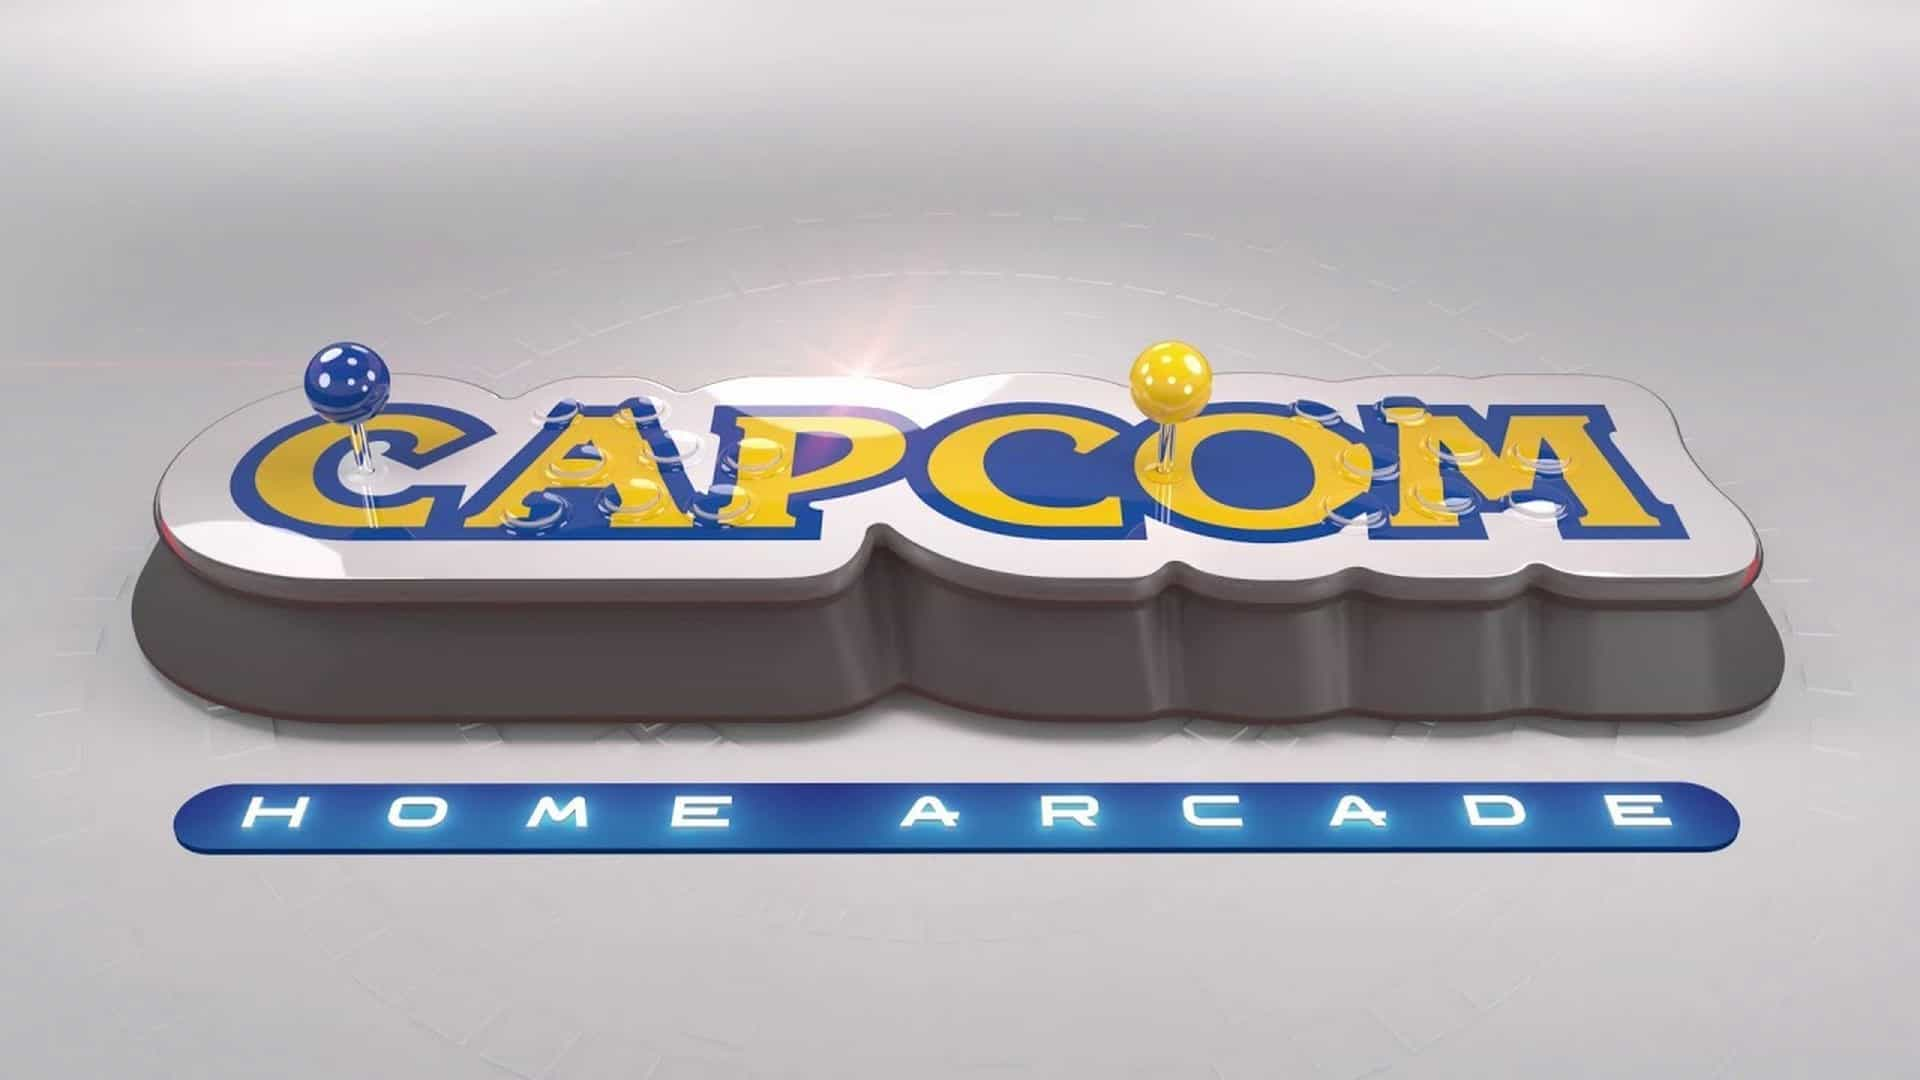 Bring The Arcade Experience Home With The CAPCOM Home Arcade – Out Now